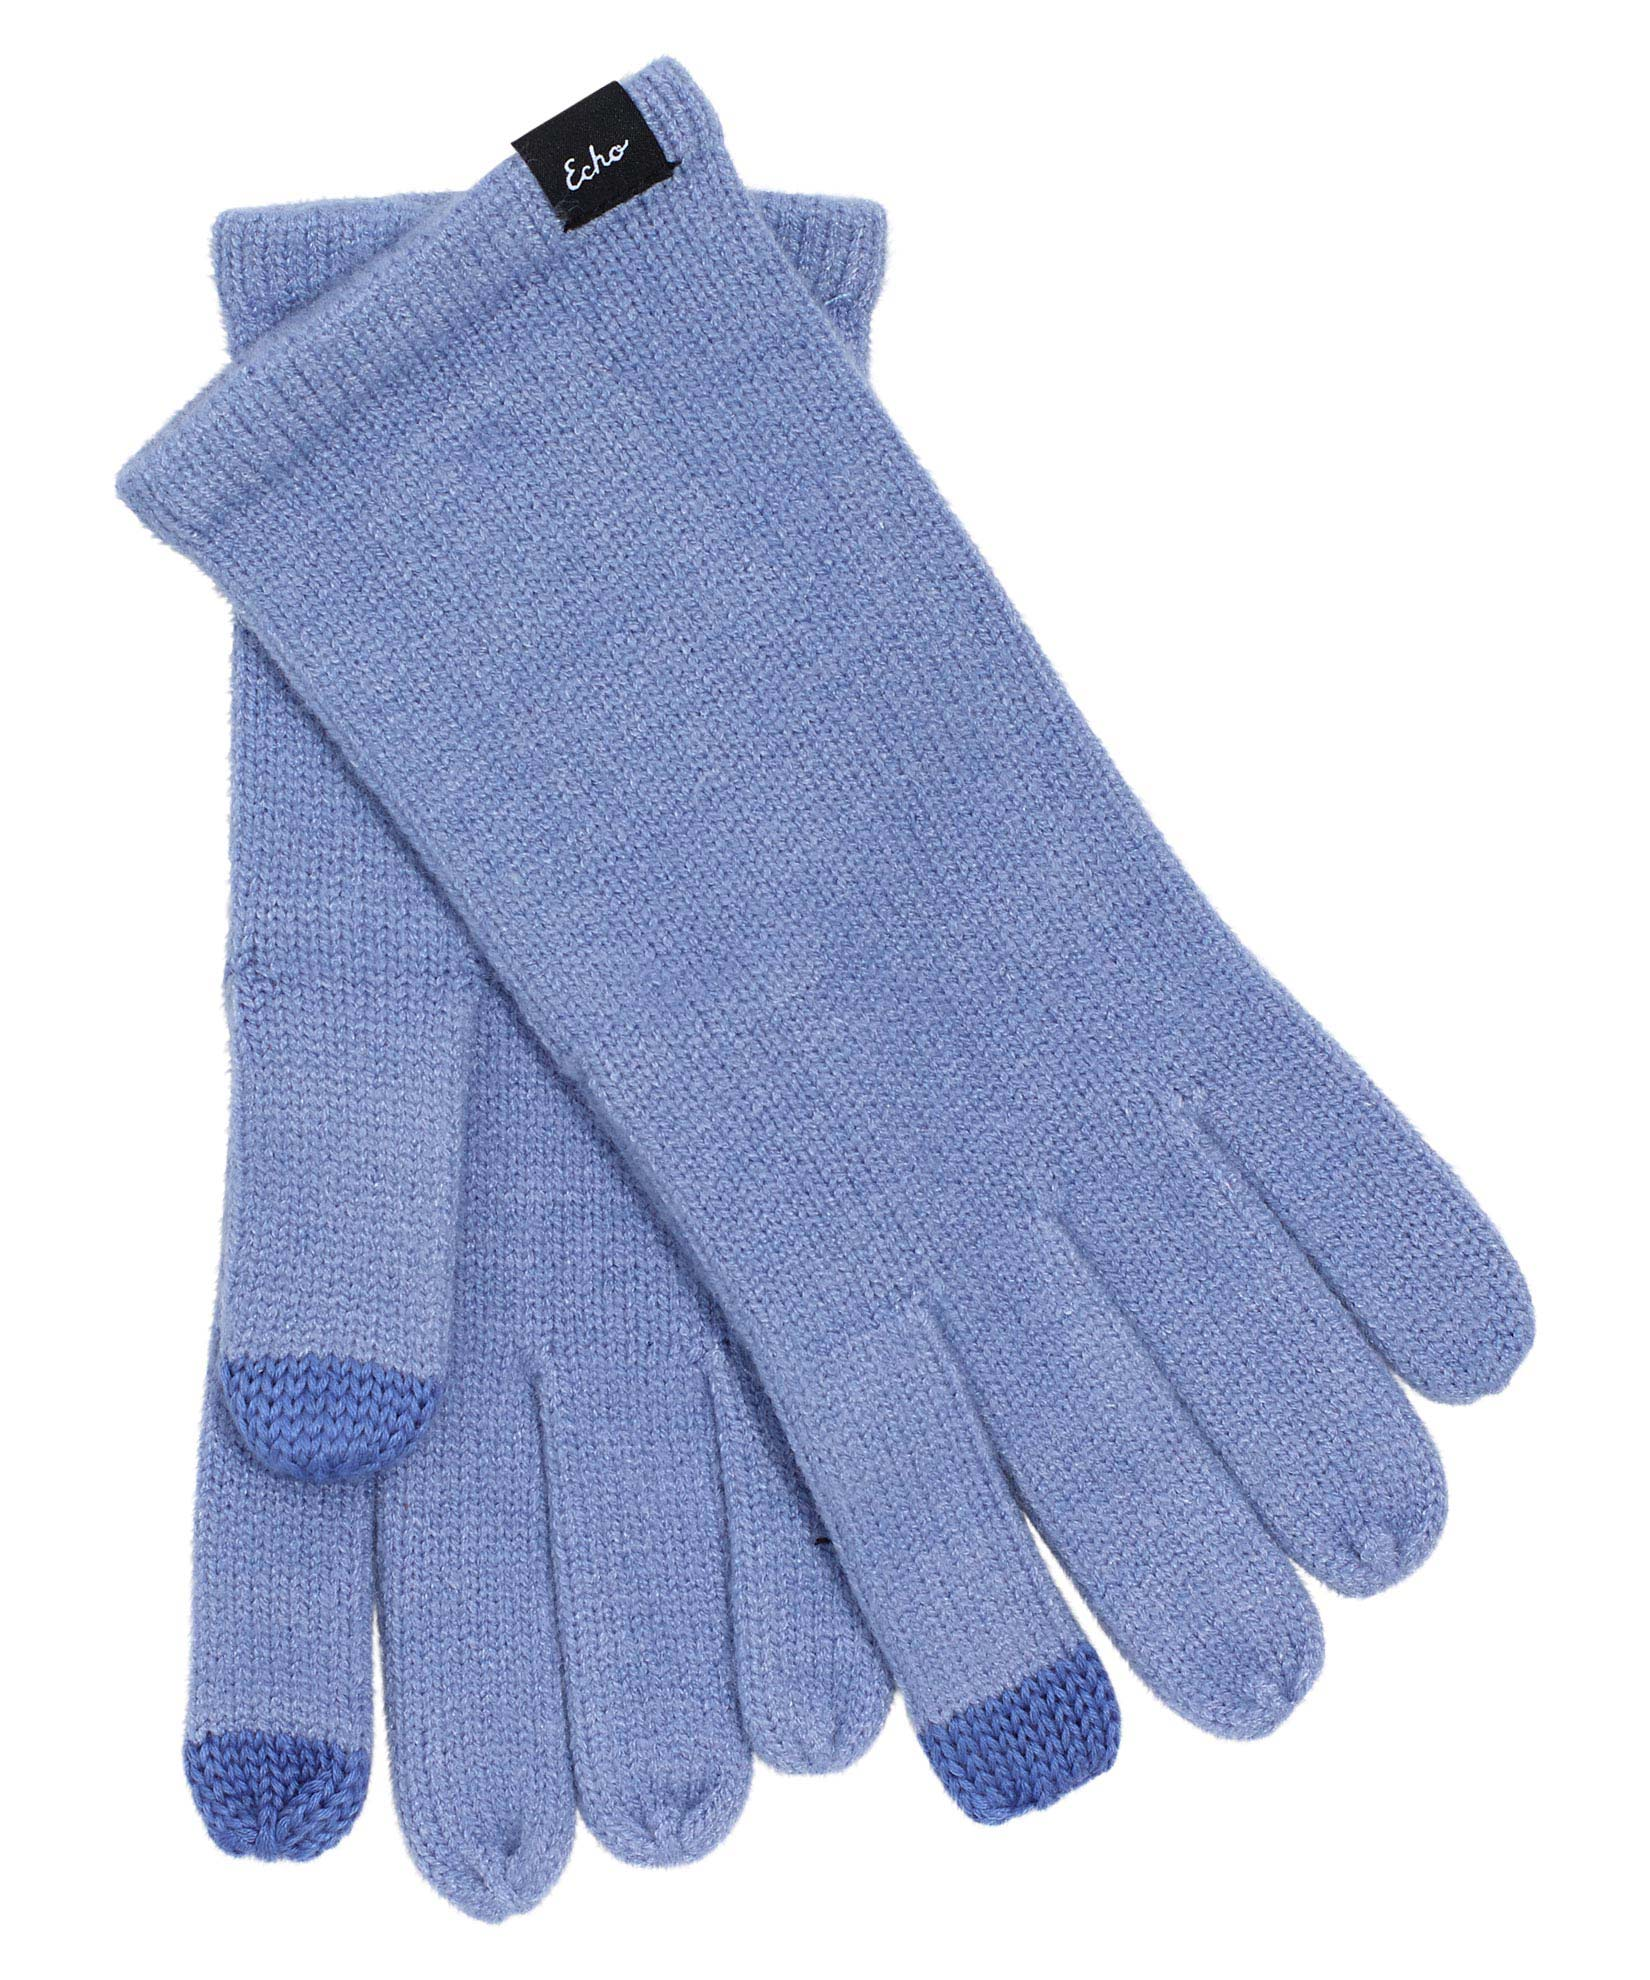 Blue Sky - Echo Knit Touch Glove